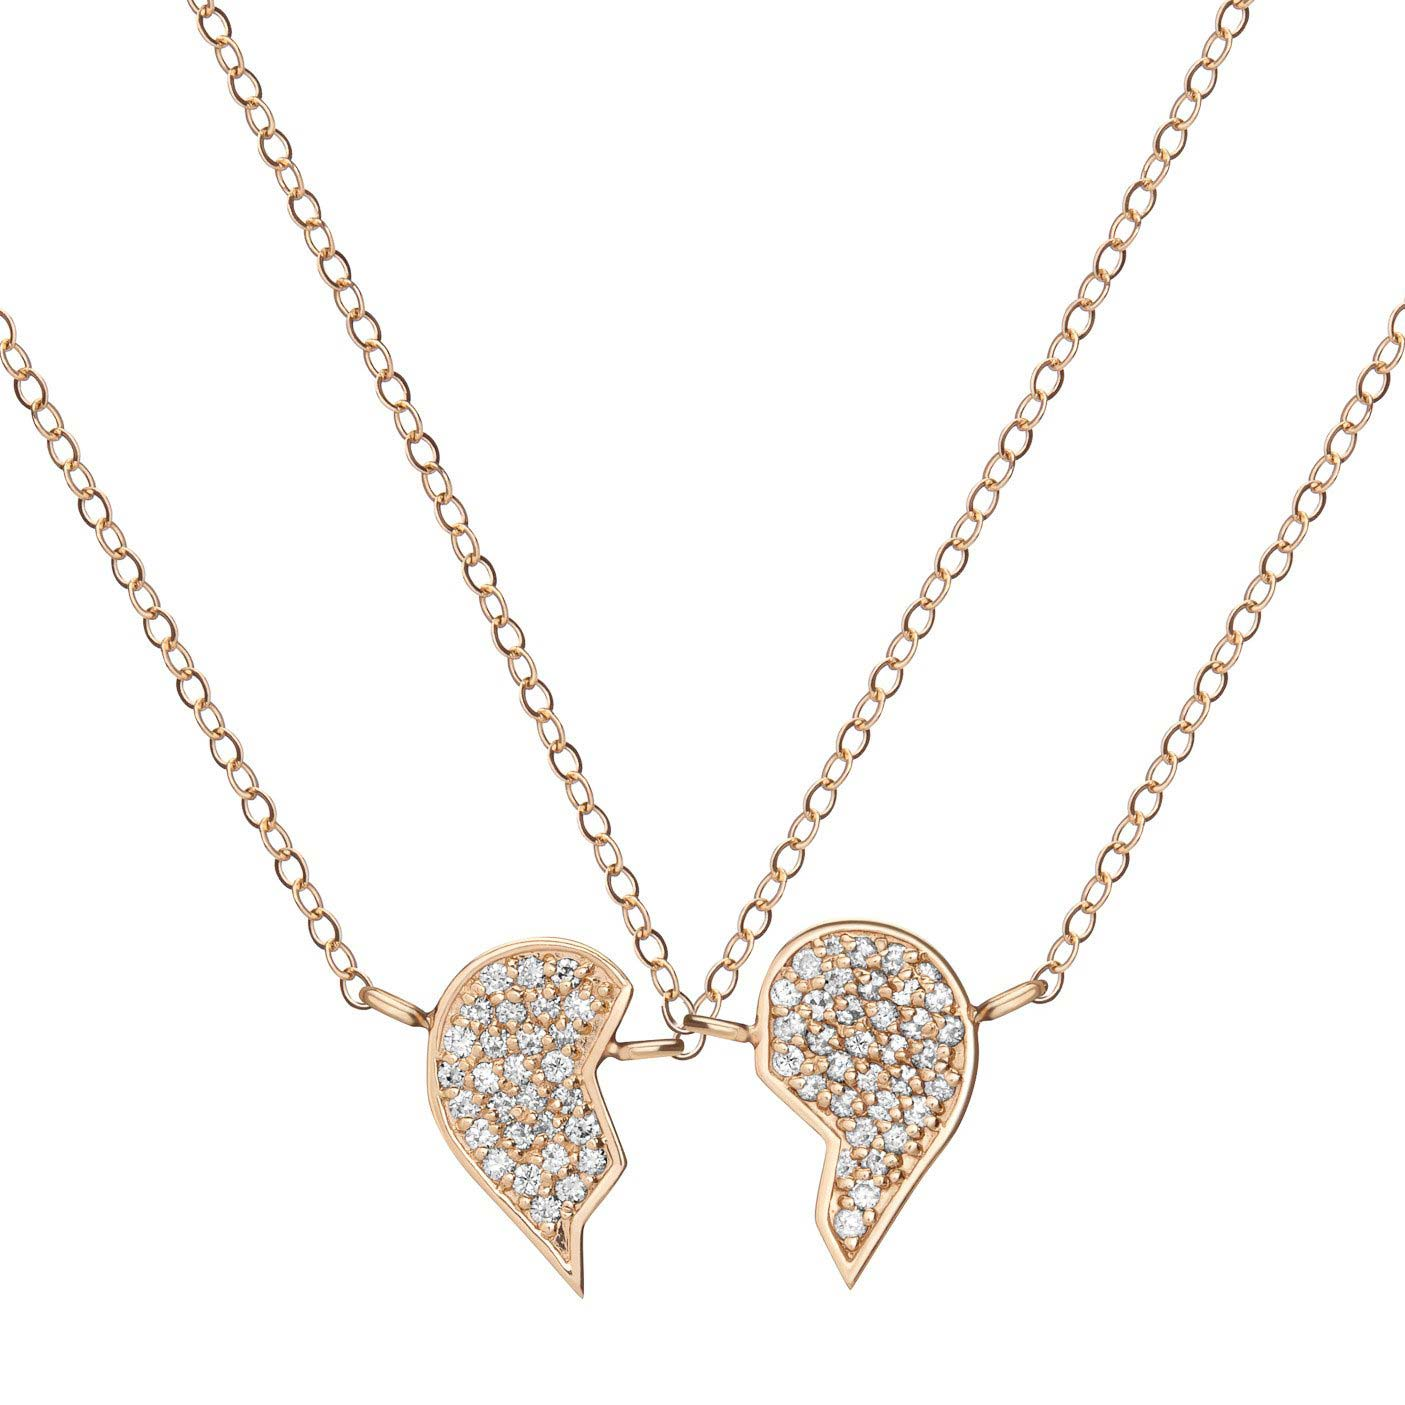 Shahla Karimi BFF Necklace Set